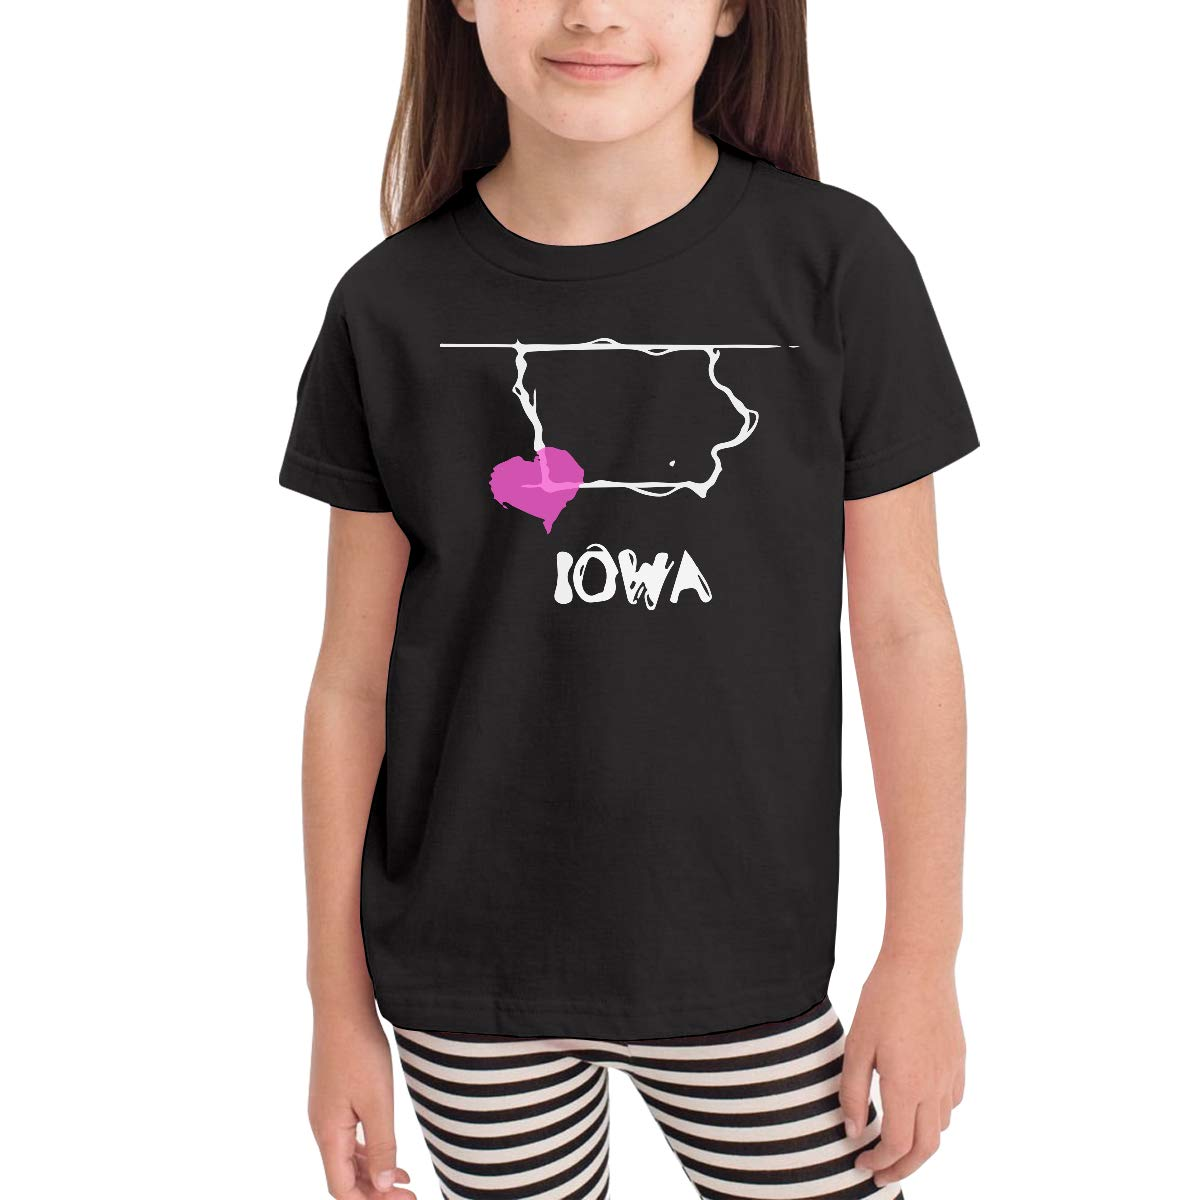 Childrens Love Iowa State Cotton Short Sleeve Tee Tops Size 2-6